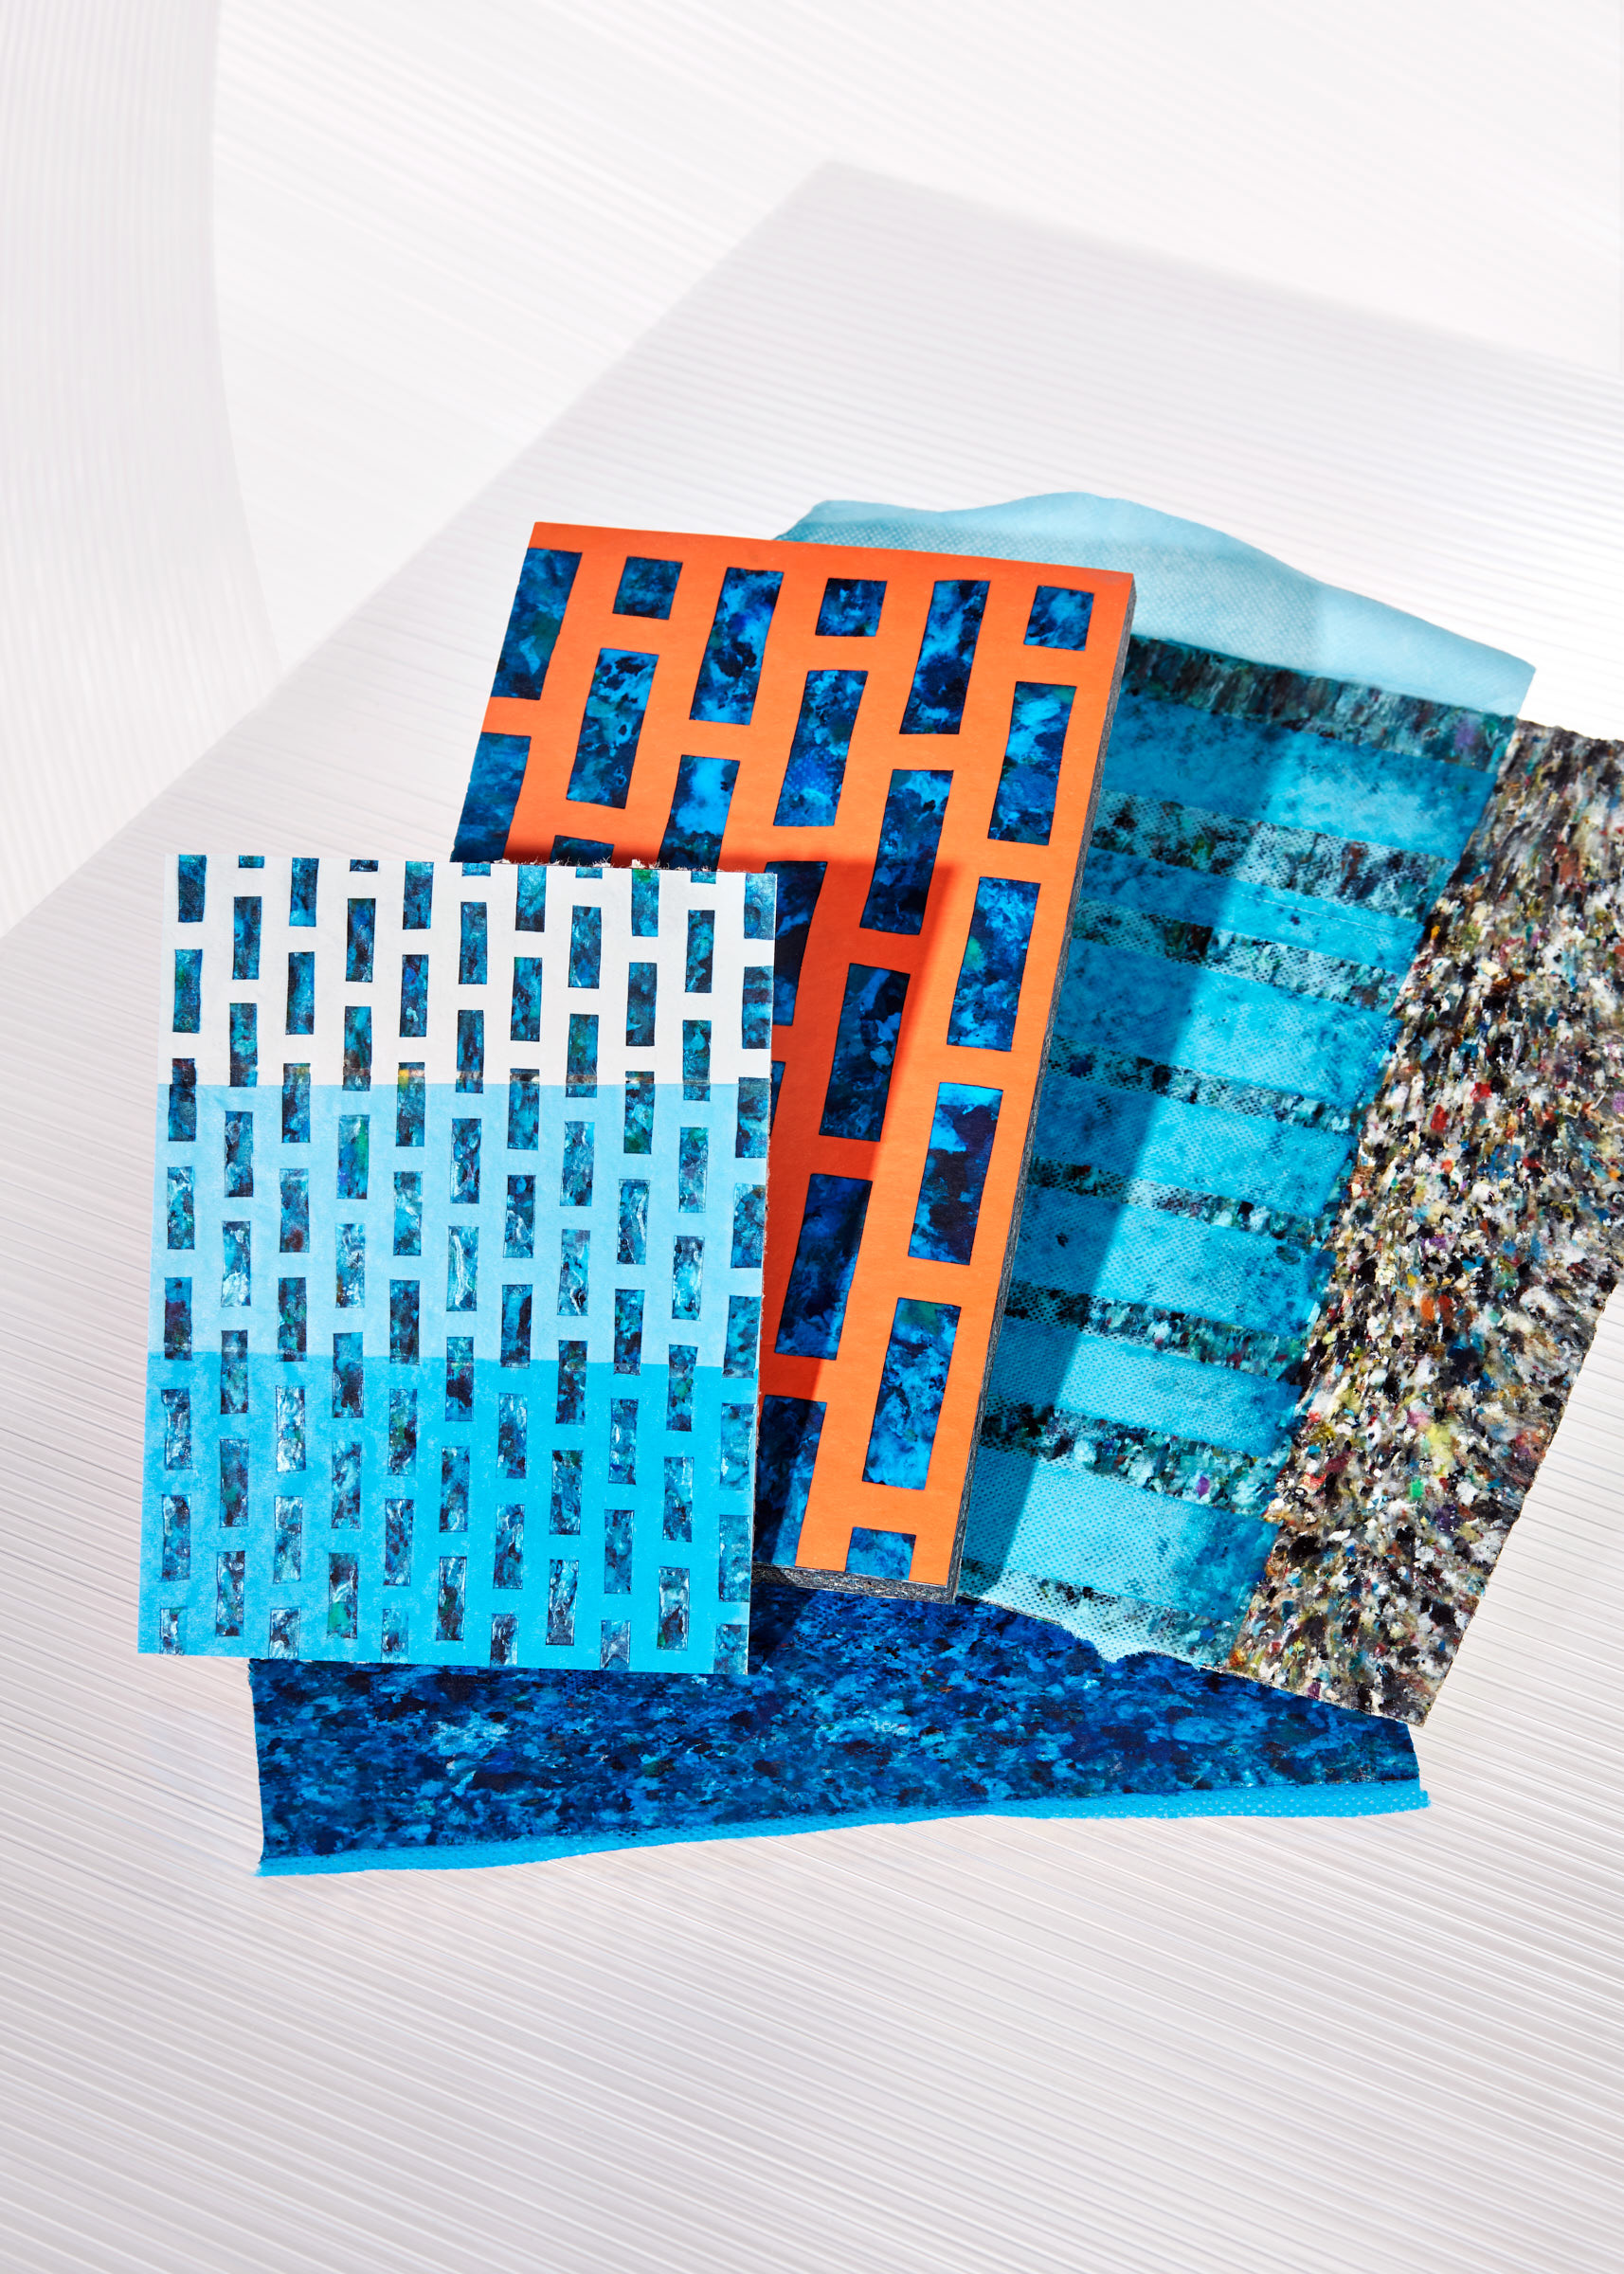 envisions-ECO-oh!-recycled plastics in process-photography-Ronald Smits-10.jpg